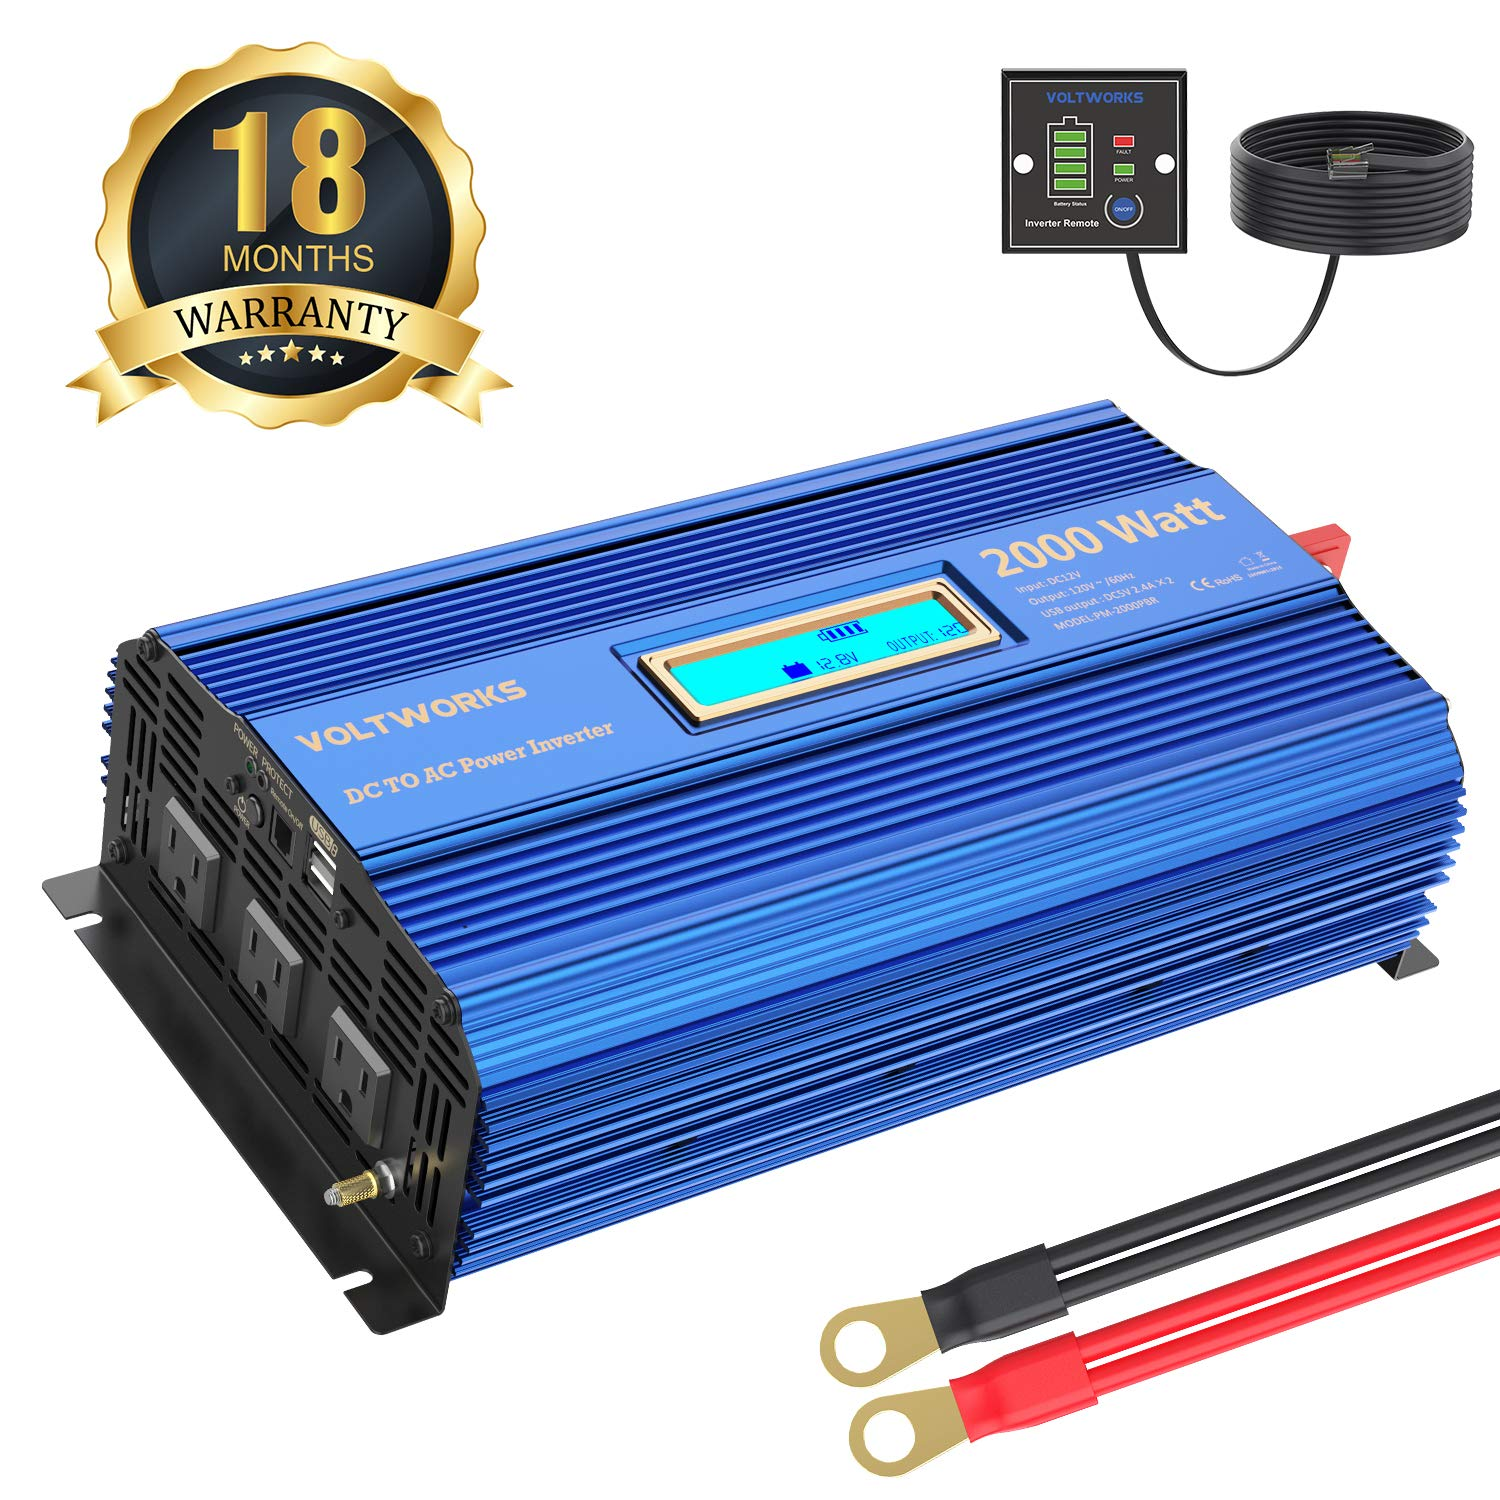 Power Inverter 2000Watt DC 12Volt to AC 120Volt with Remote Control LCD Display Dual 2.4A USB Ports for RV Truck Boat